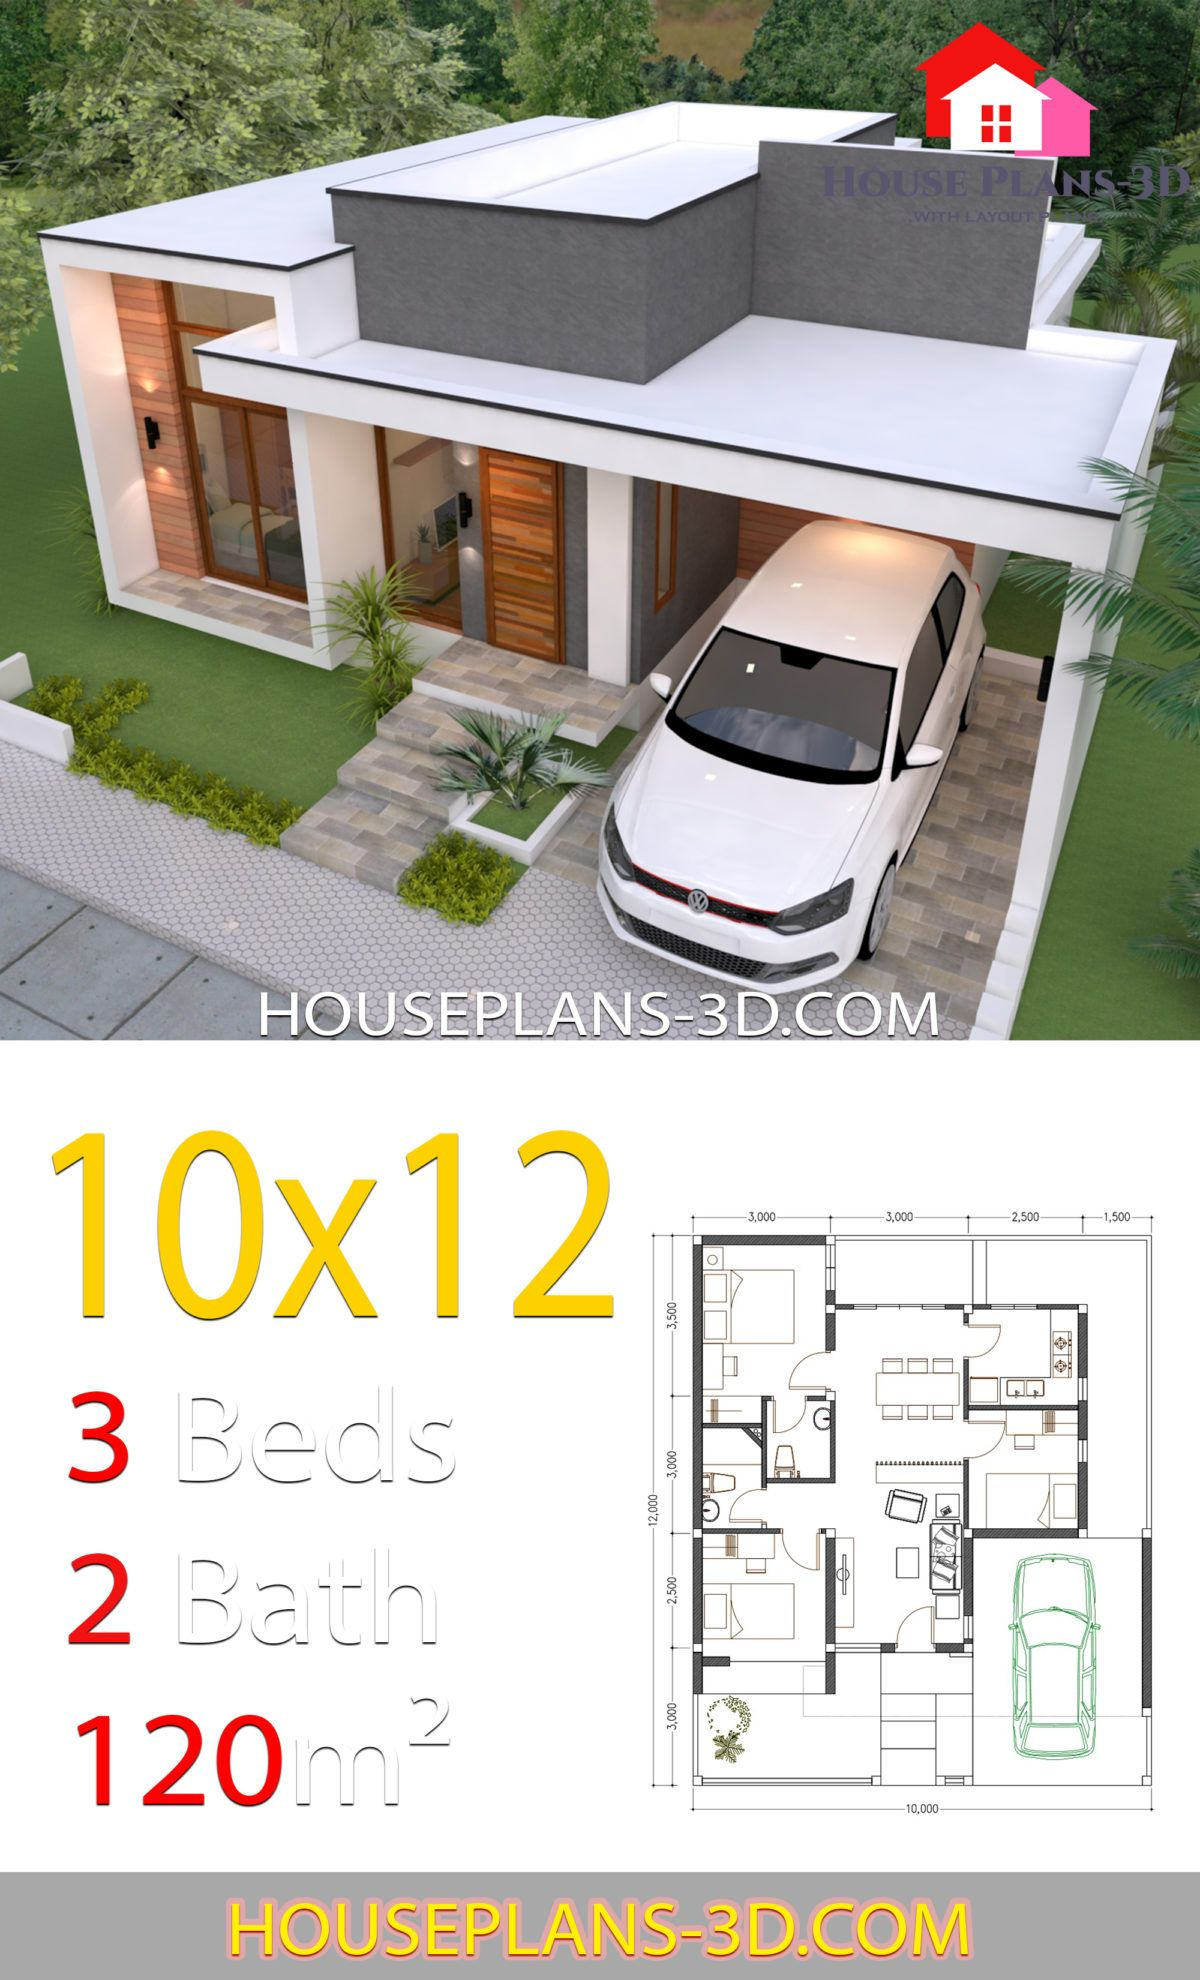 House Design 10x12 With 3 Bedrooms Terrace Roof House Plans 3d Modern House Plans House Plans Minimalist House Design